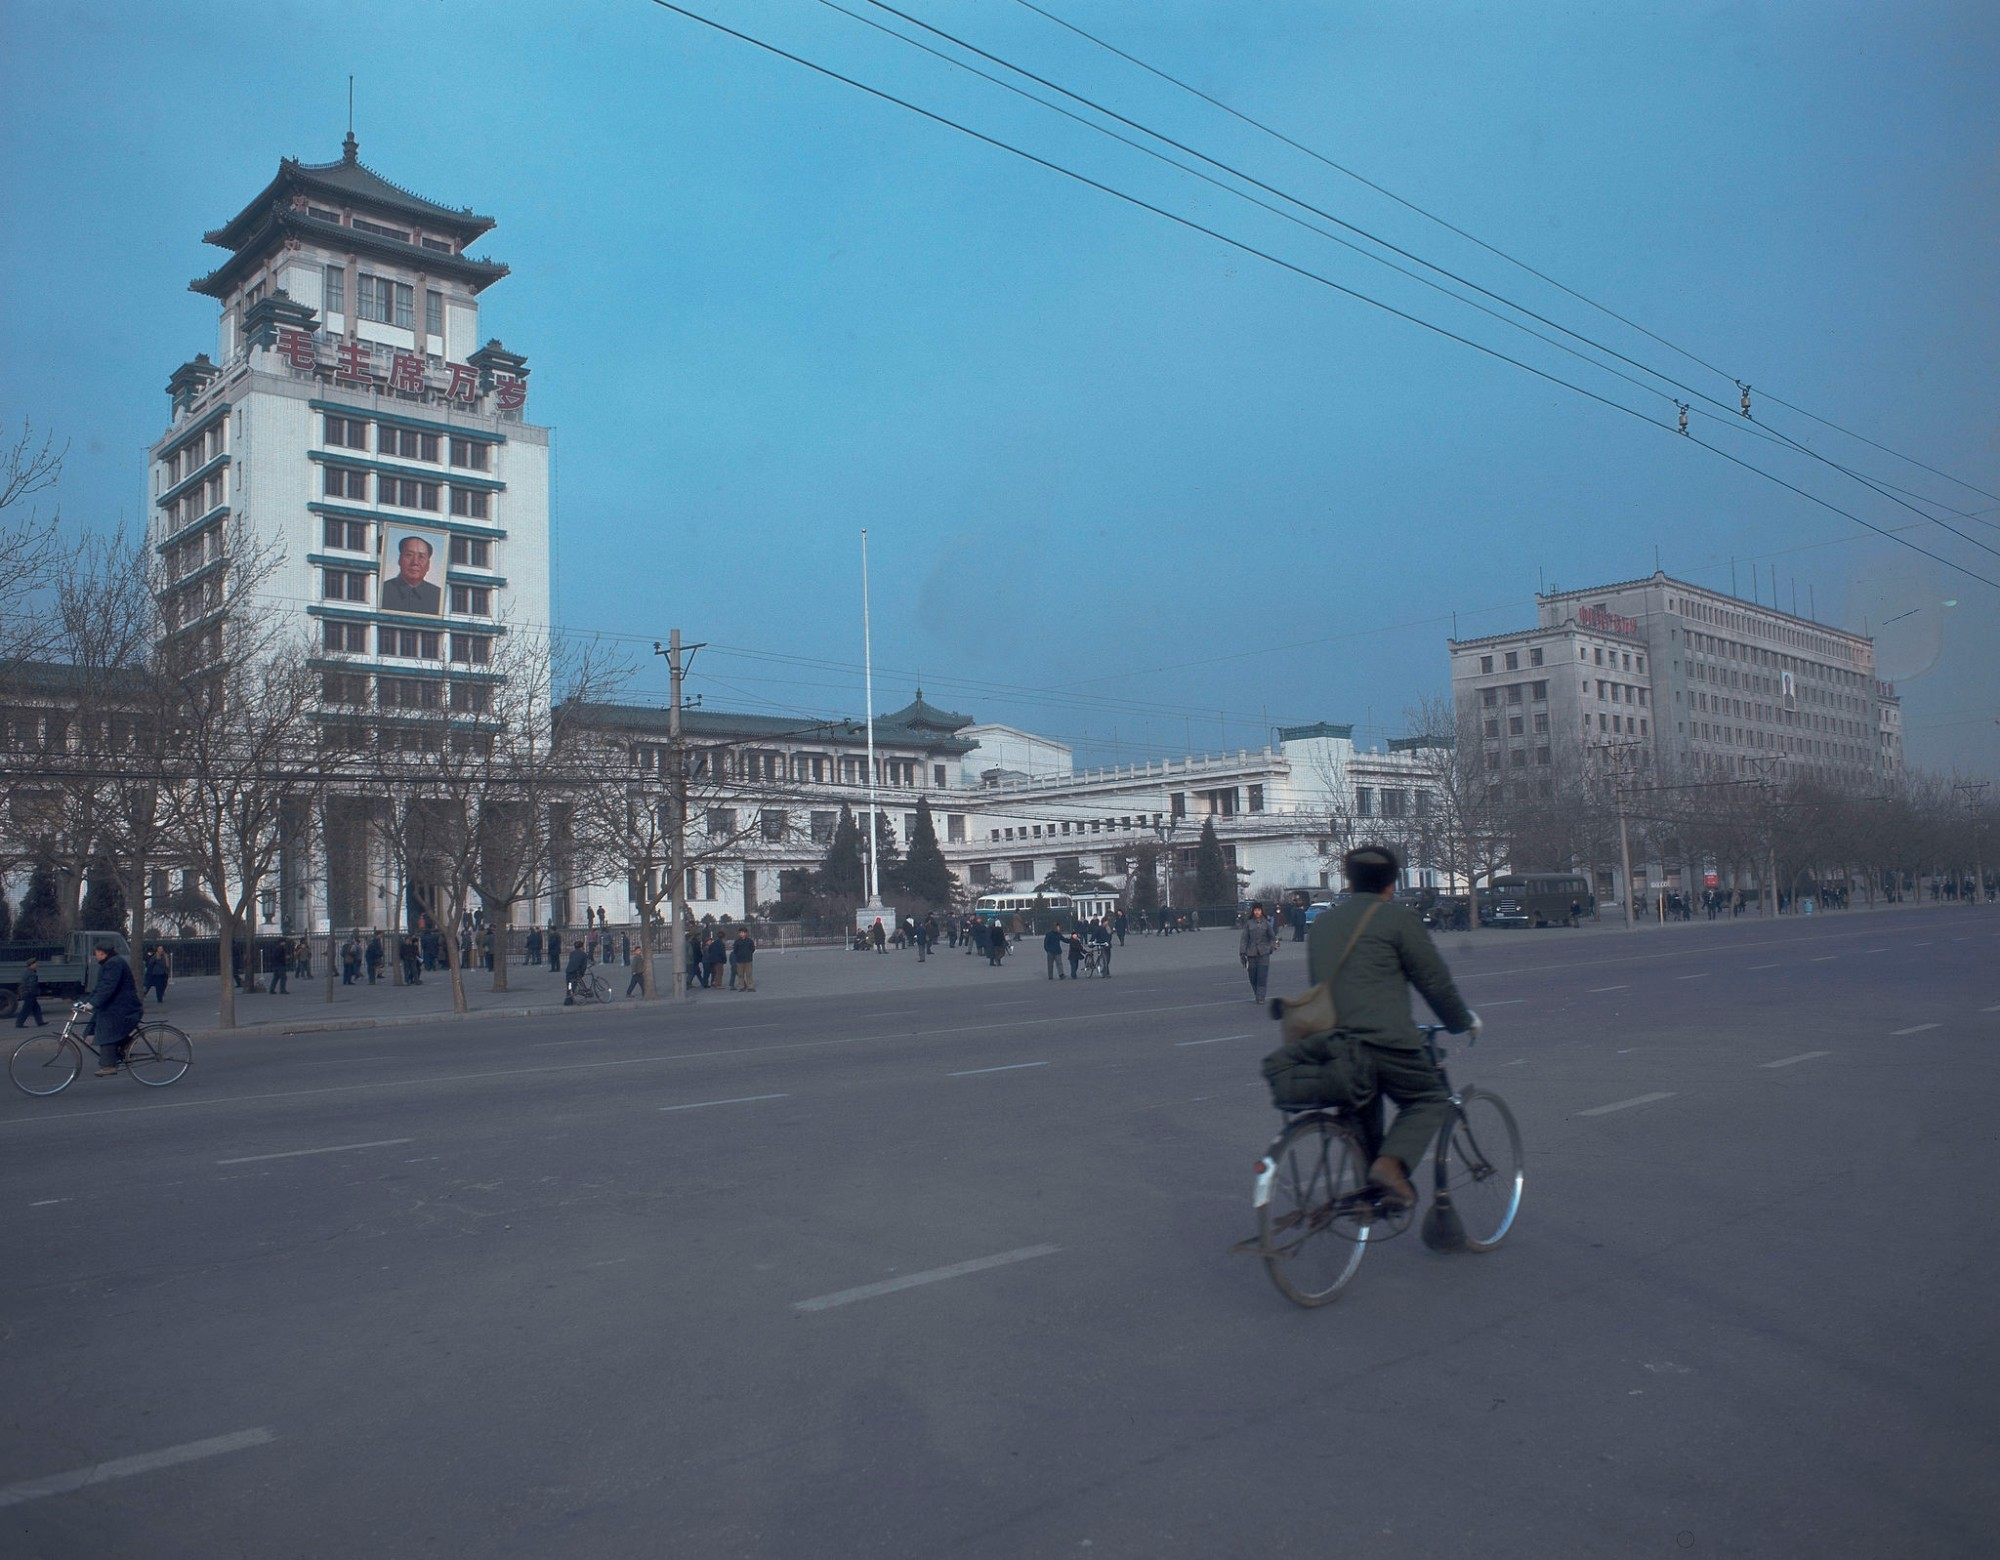 1969 Beijing by Folco Quilici